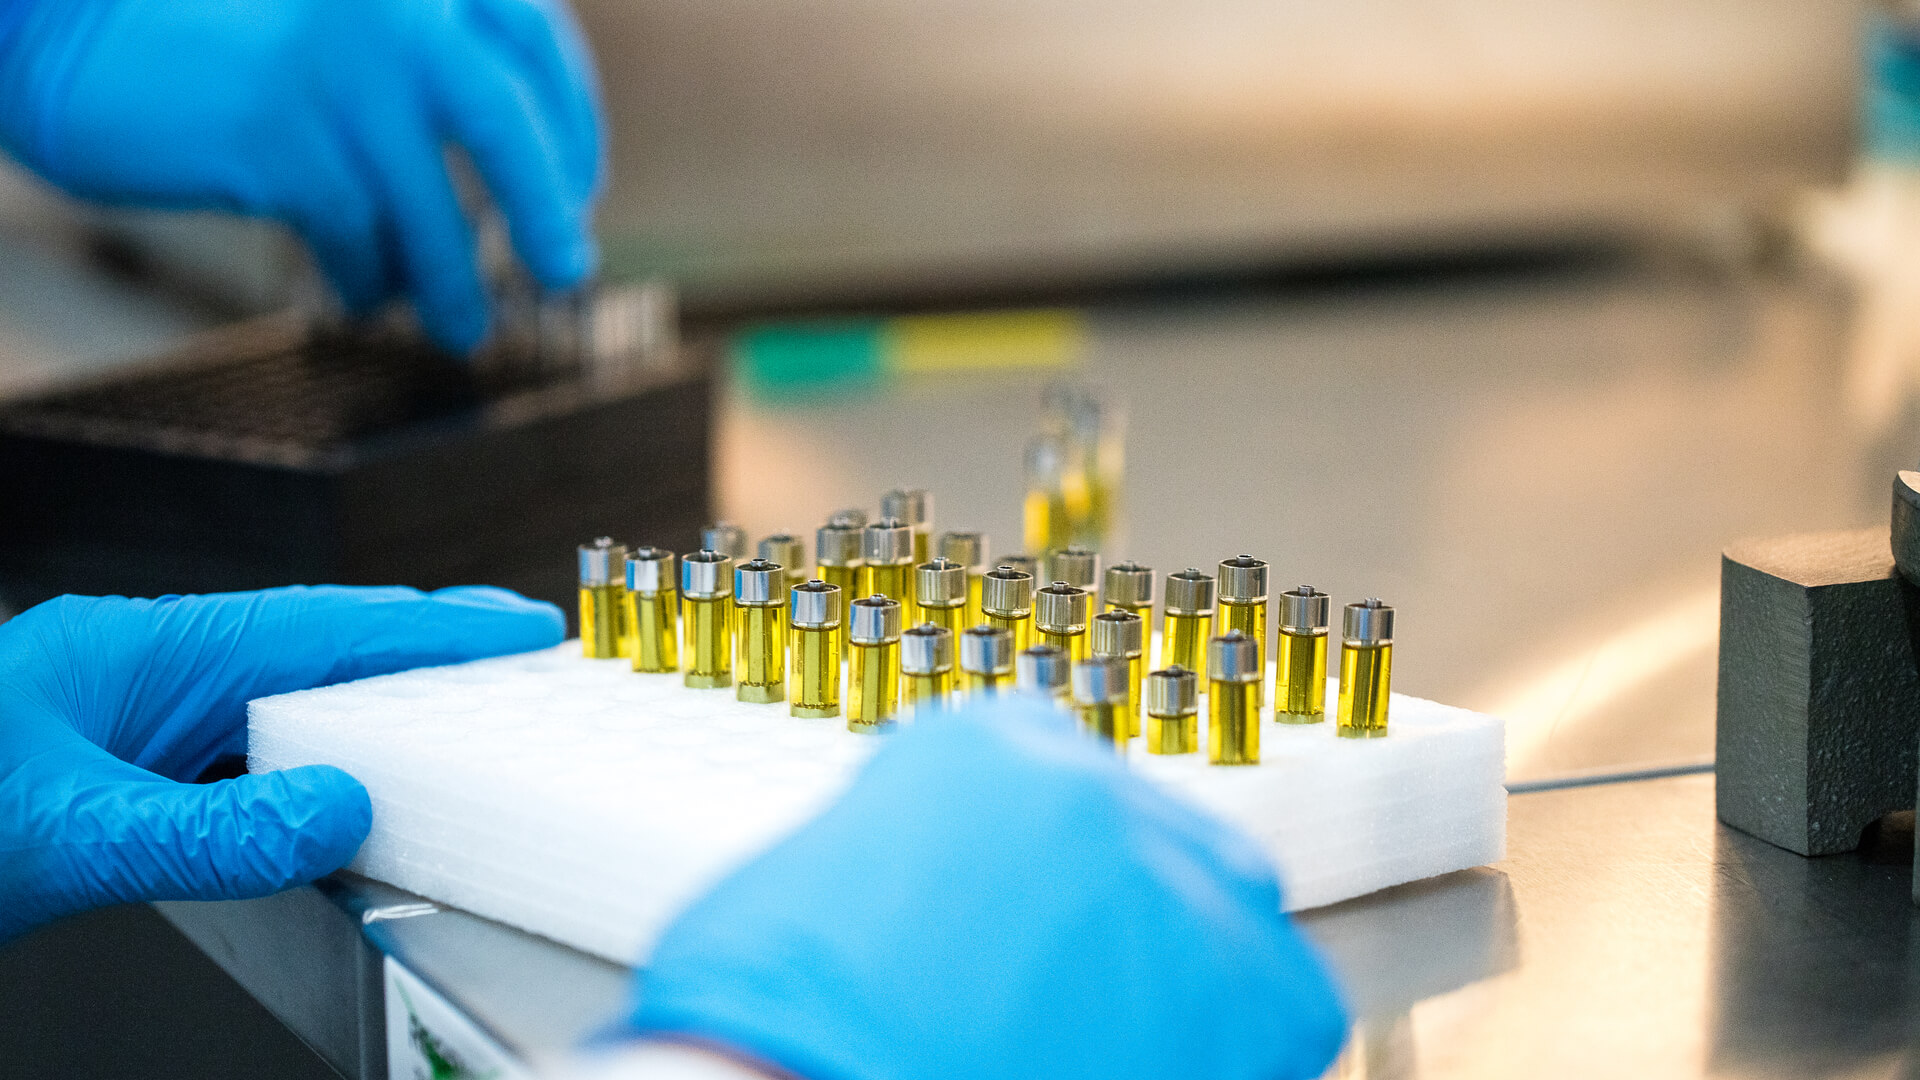 A lab technician preparing a tray of marijuana cartridges